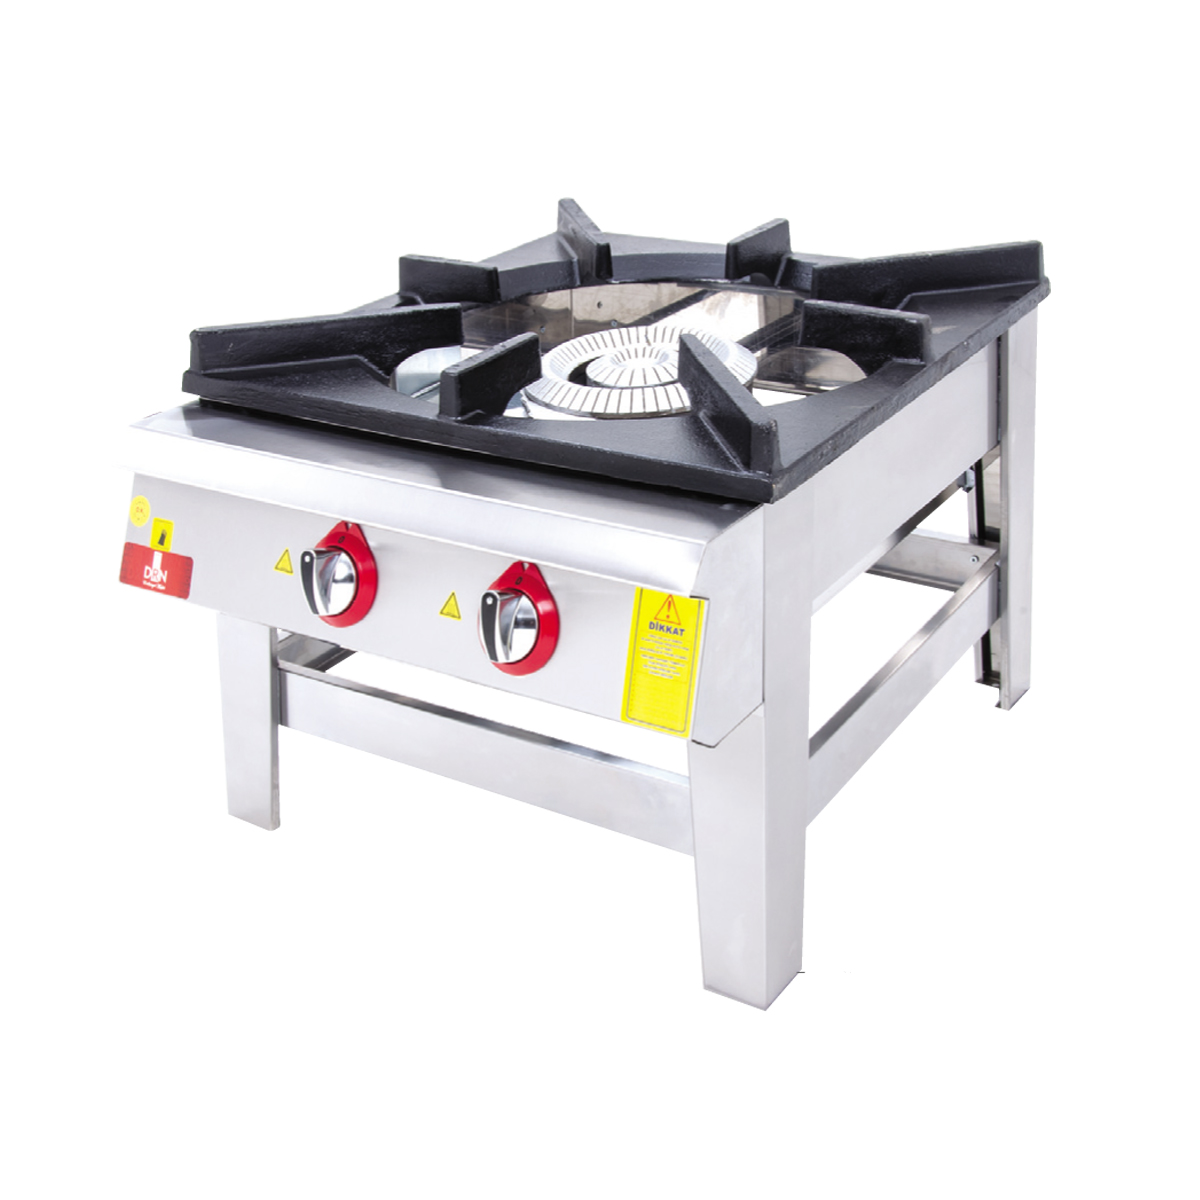 Floor Cooker - Double Ignition - 70x70 - Gas